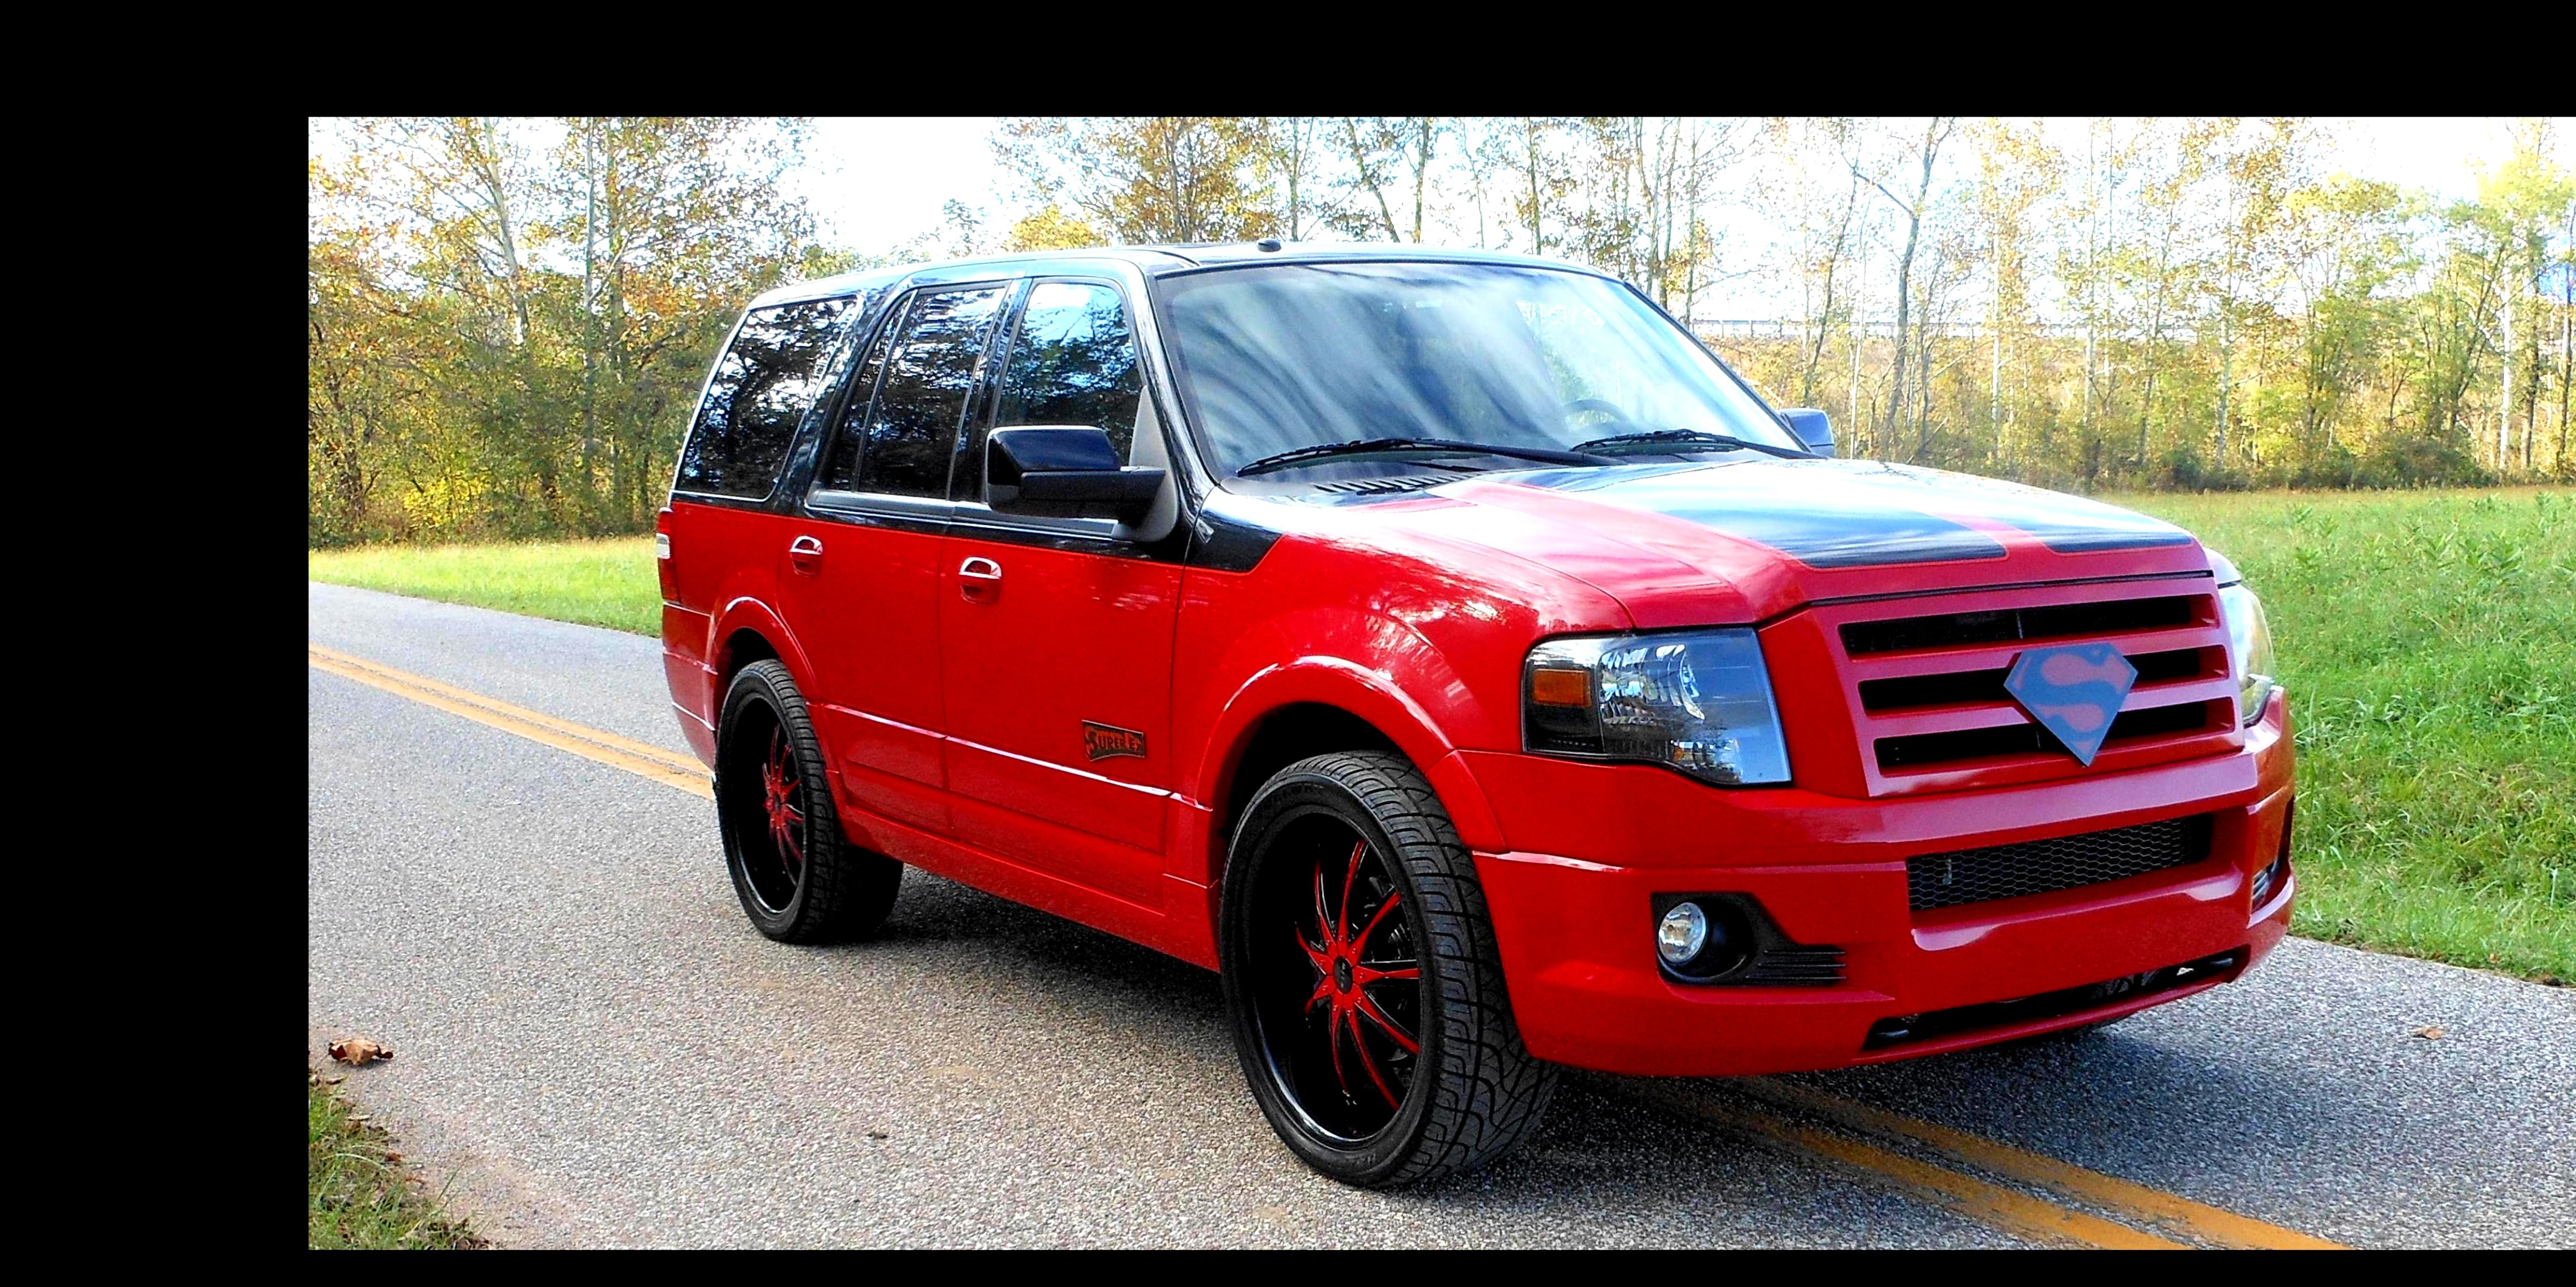 Ford Expedition 2002 #48